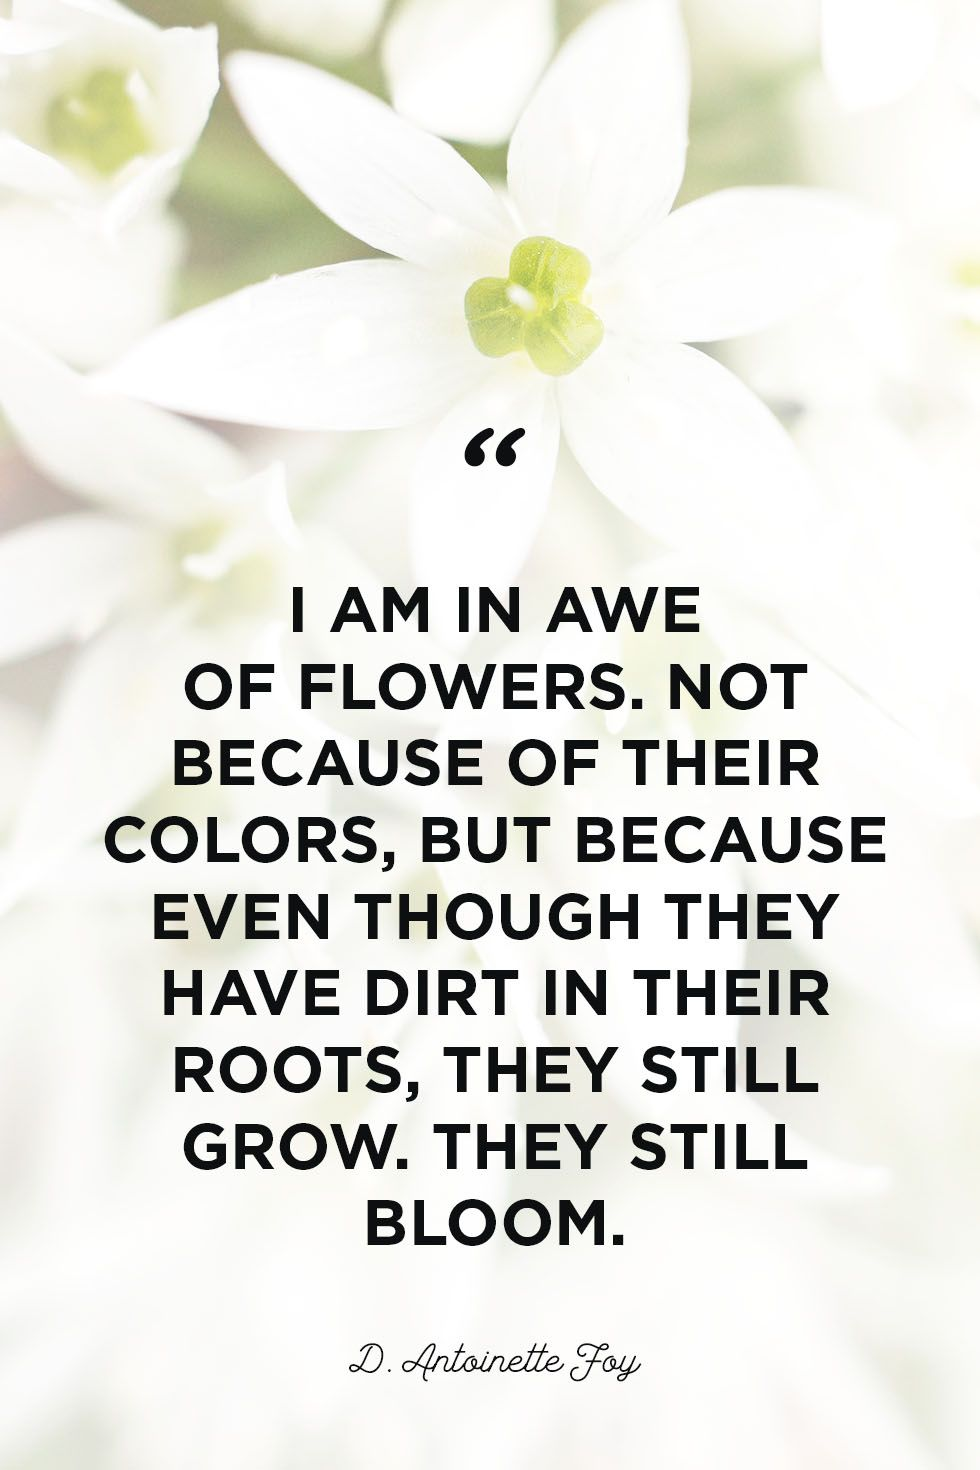 Quotes About Spring And New Beginnings The Celebration Of Life And